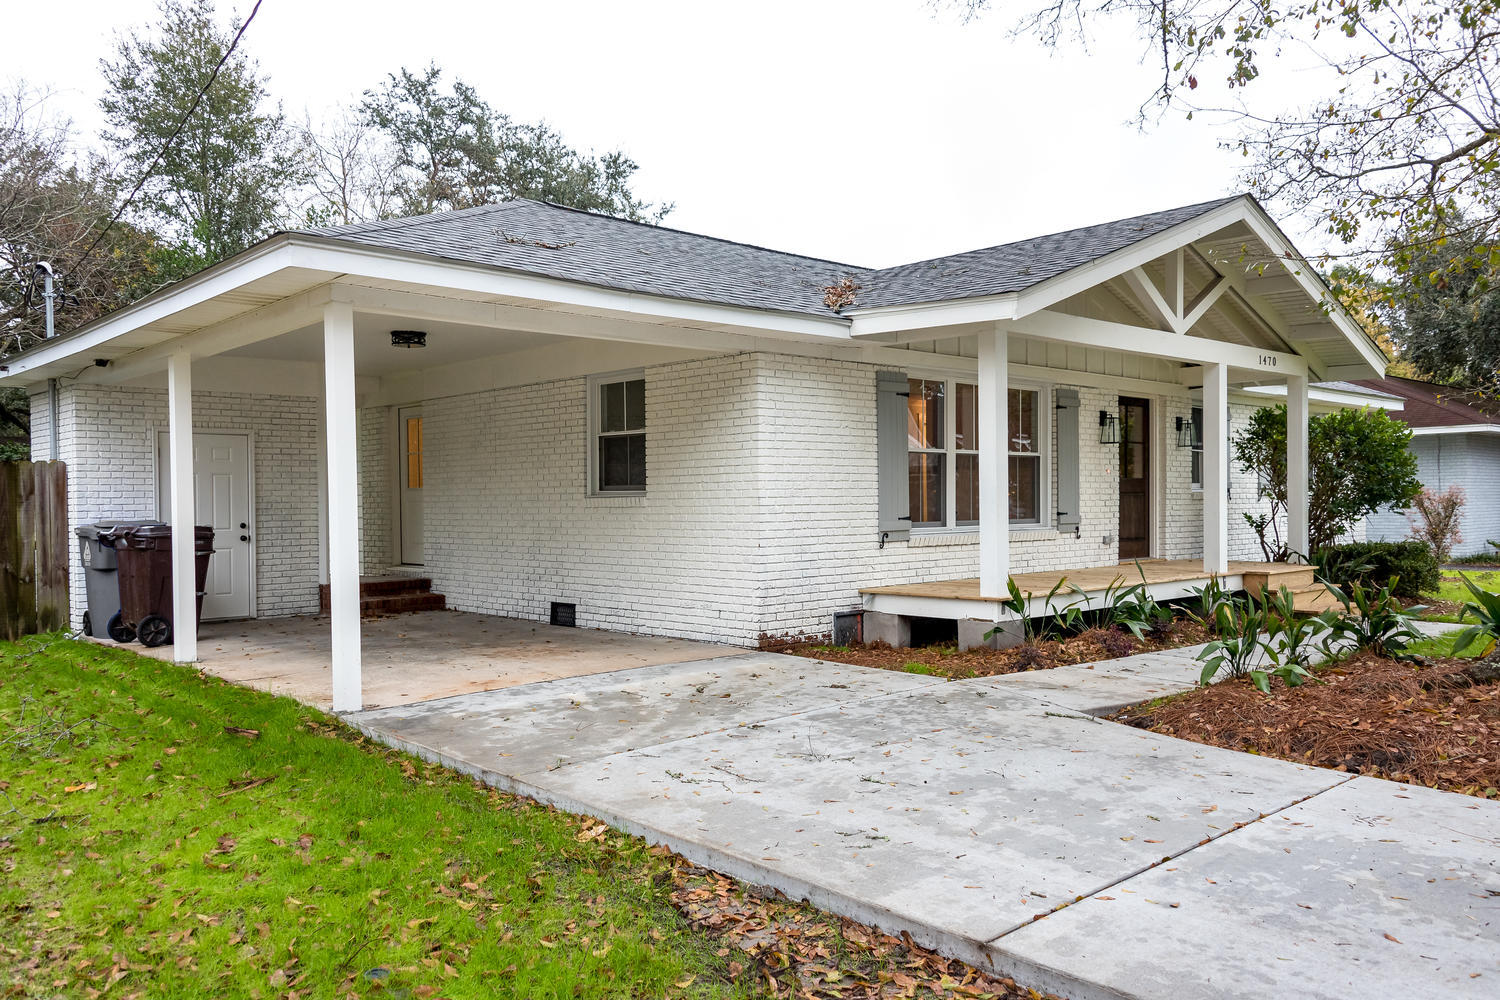 Old Mt Pleasant Homes For Sale - 1470 Mataoka, Mount Pleasant, SC - 20